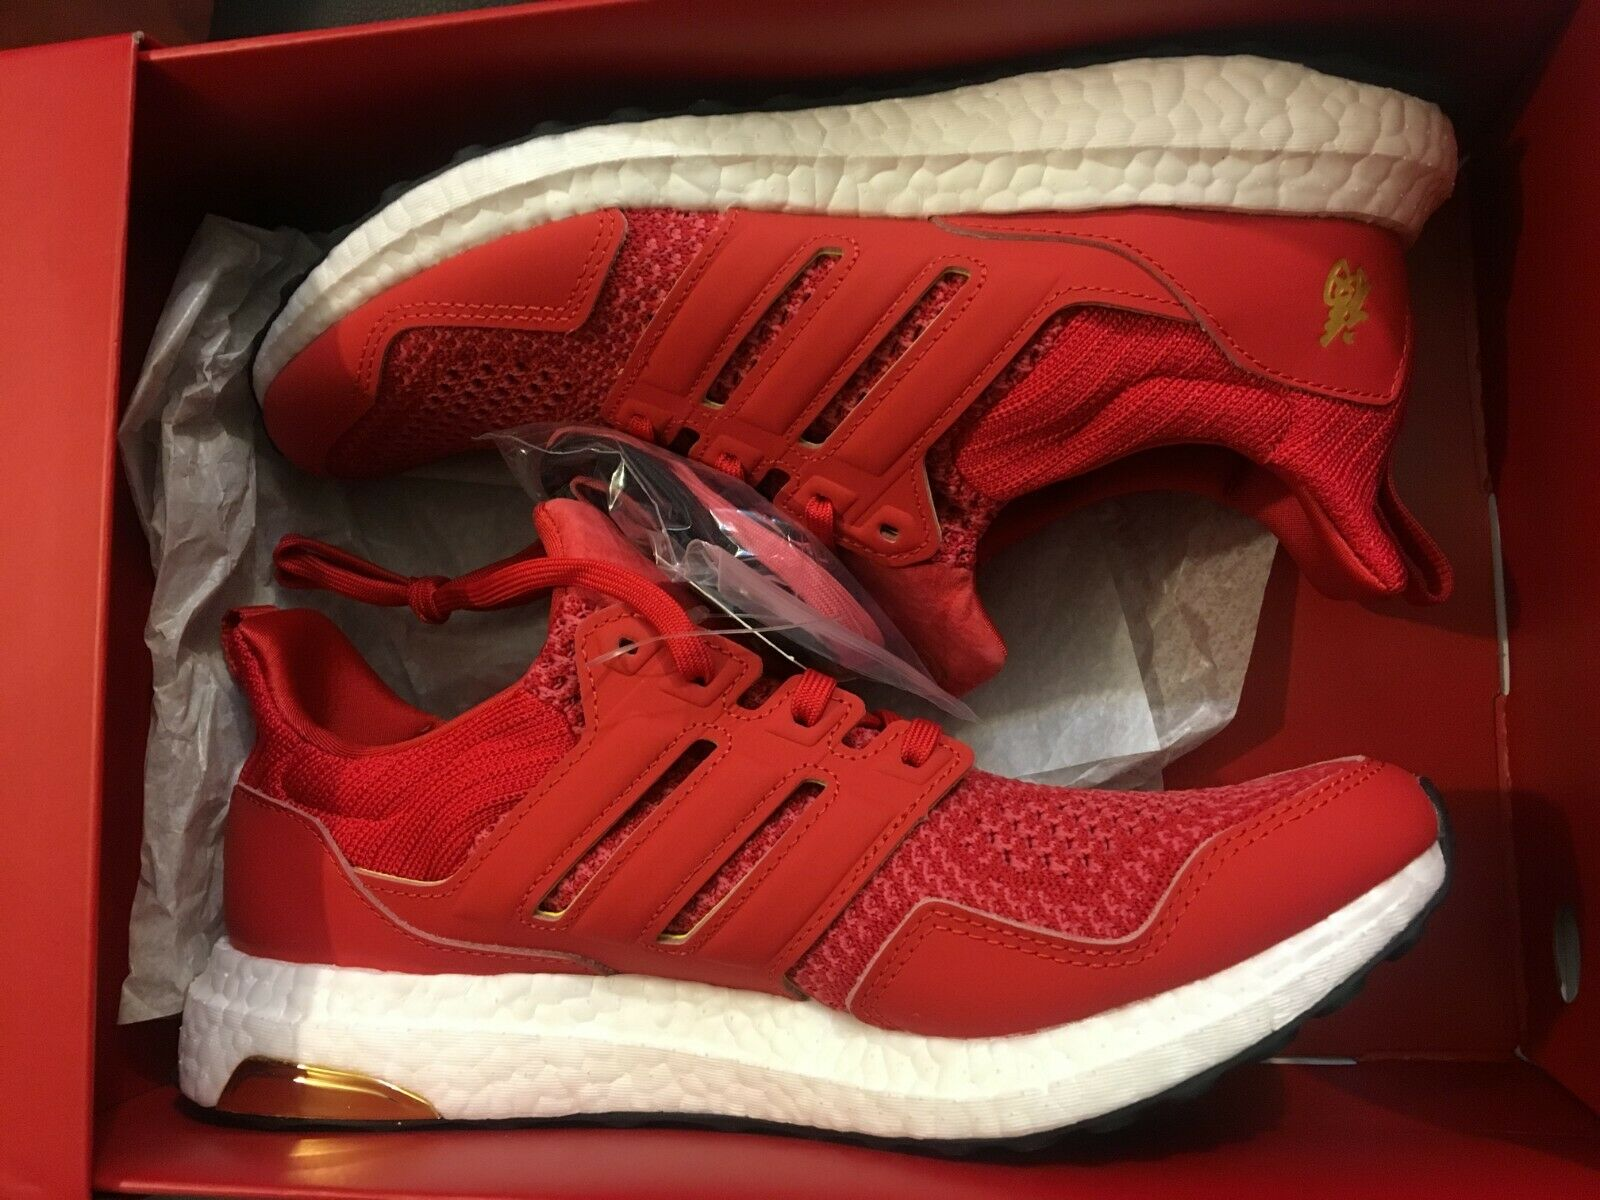 NEW ADIDAS ULTRA BOOST 1.0 X EDDIE HUANG CNY ULTRABOOST SHOE F36426 MEN SIZE 8